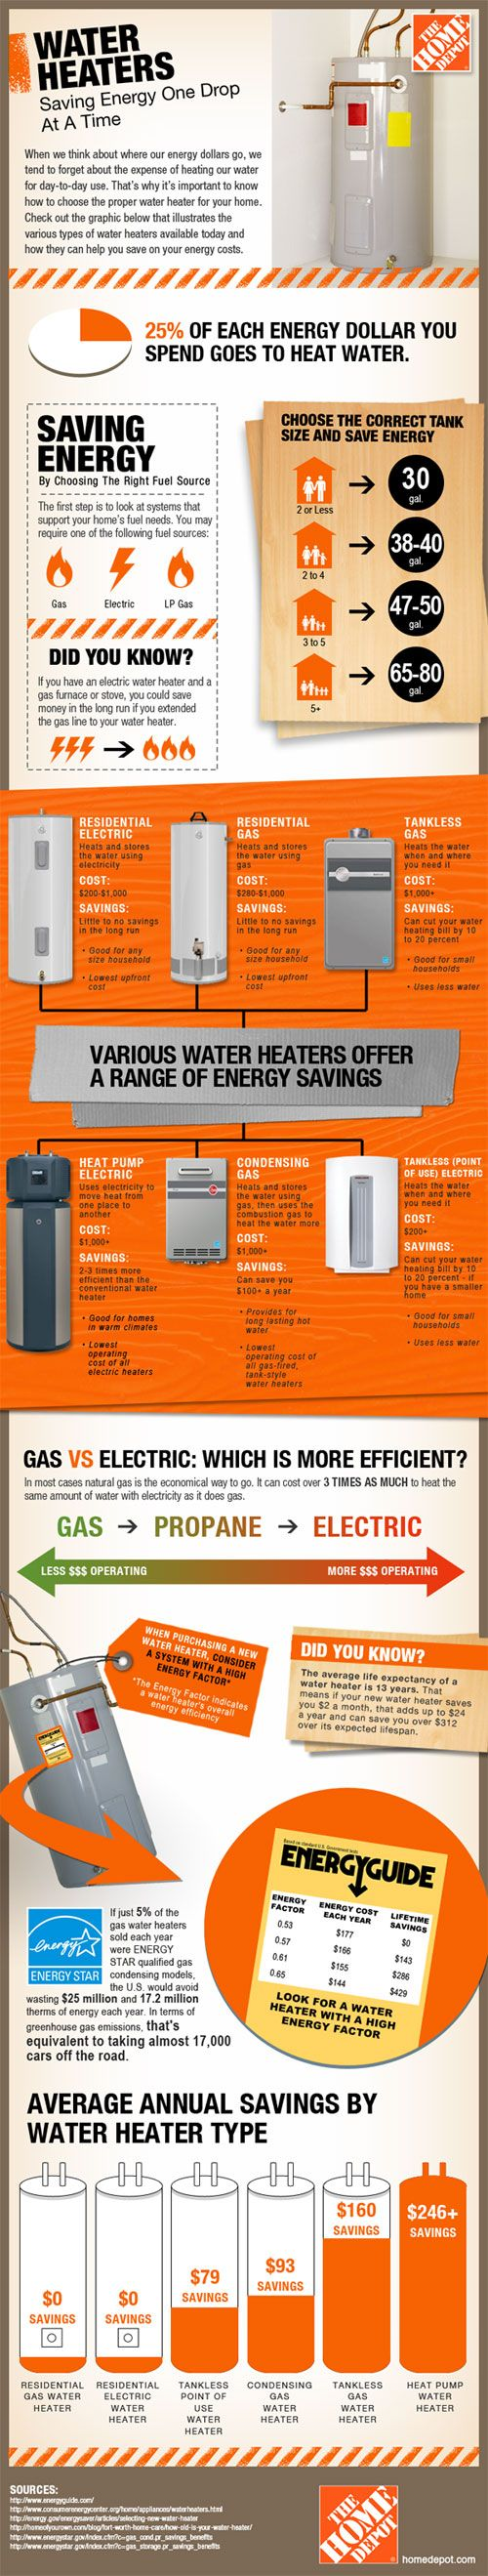 How to choose the best water heater